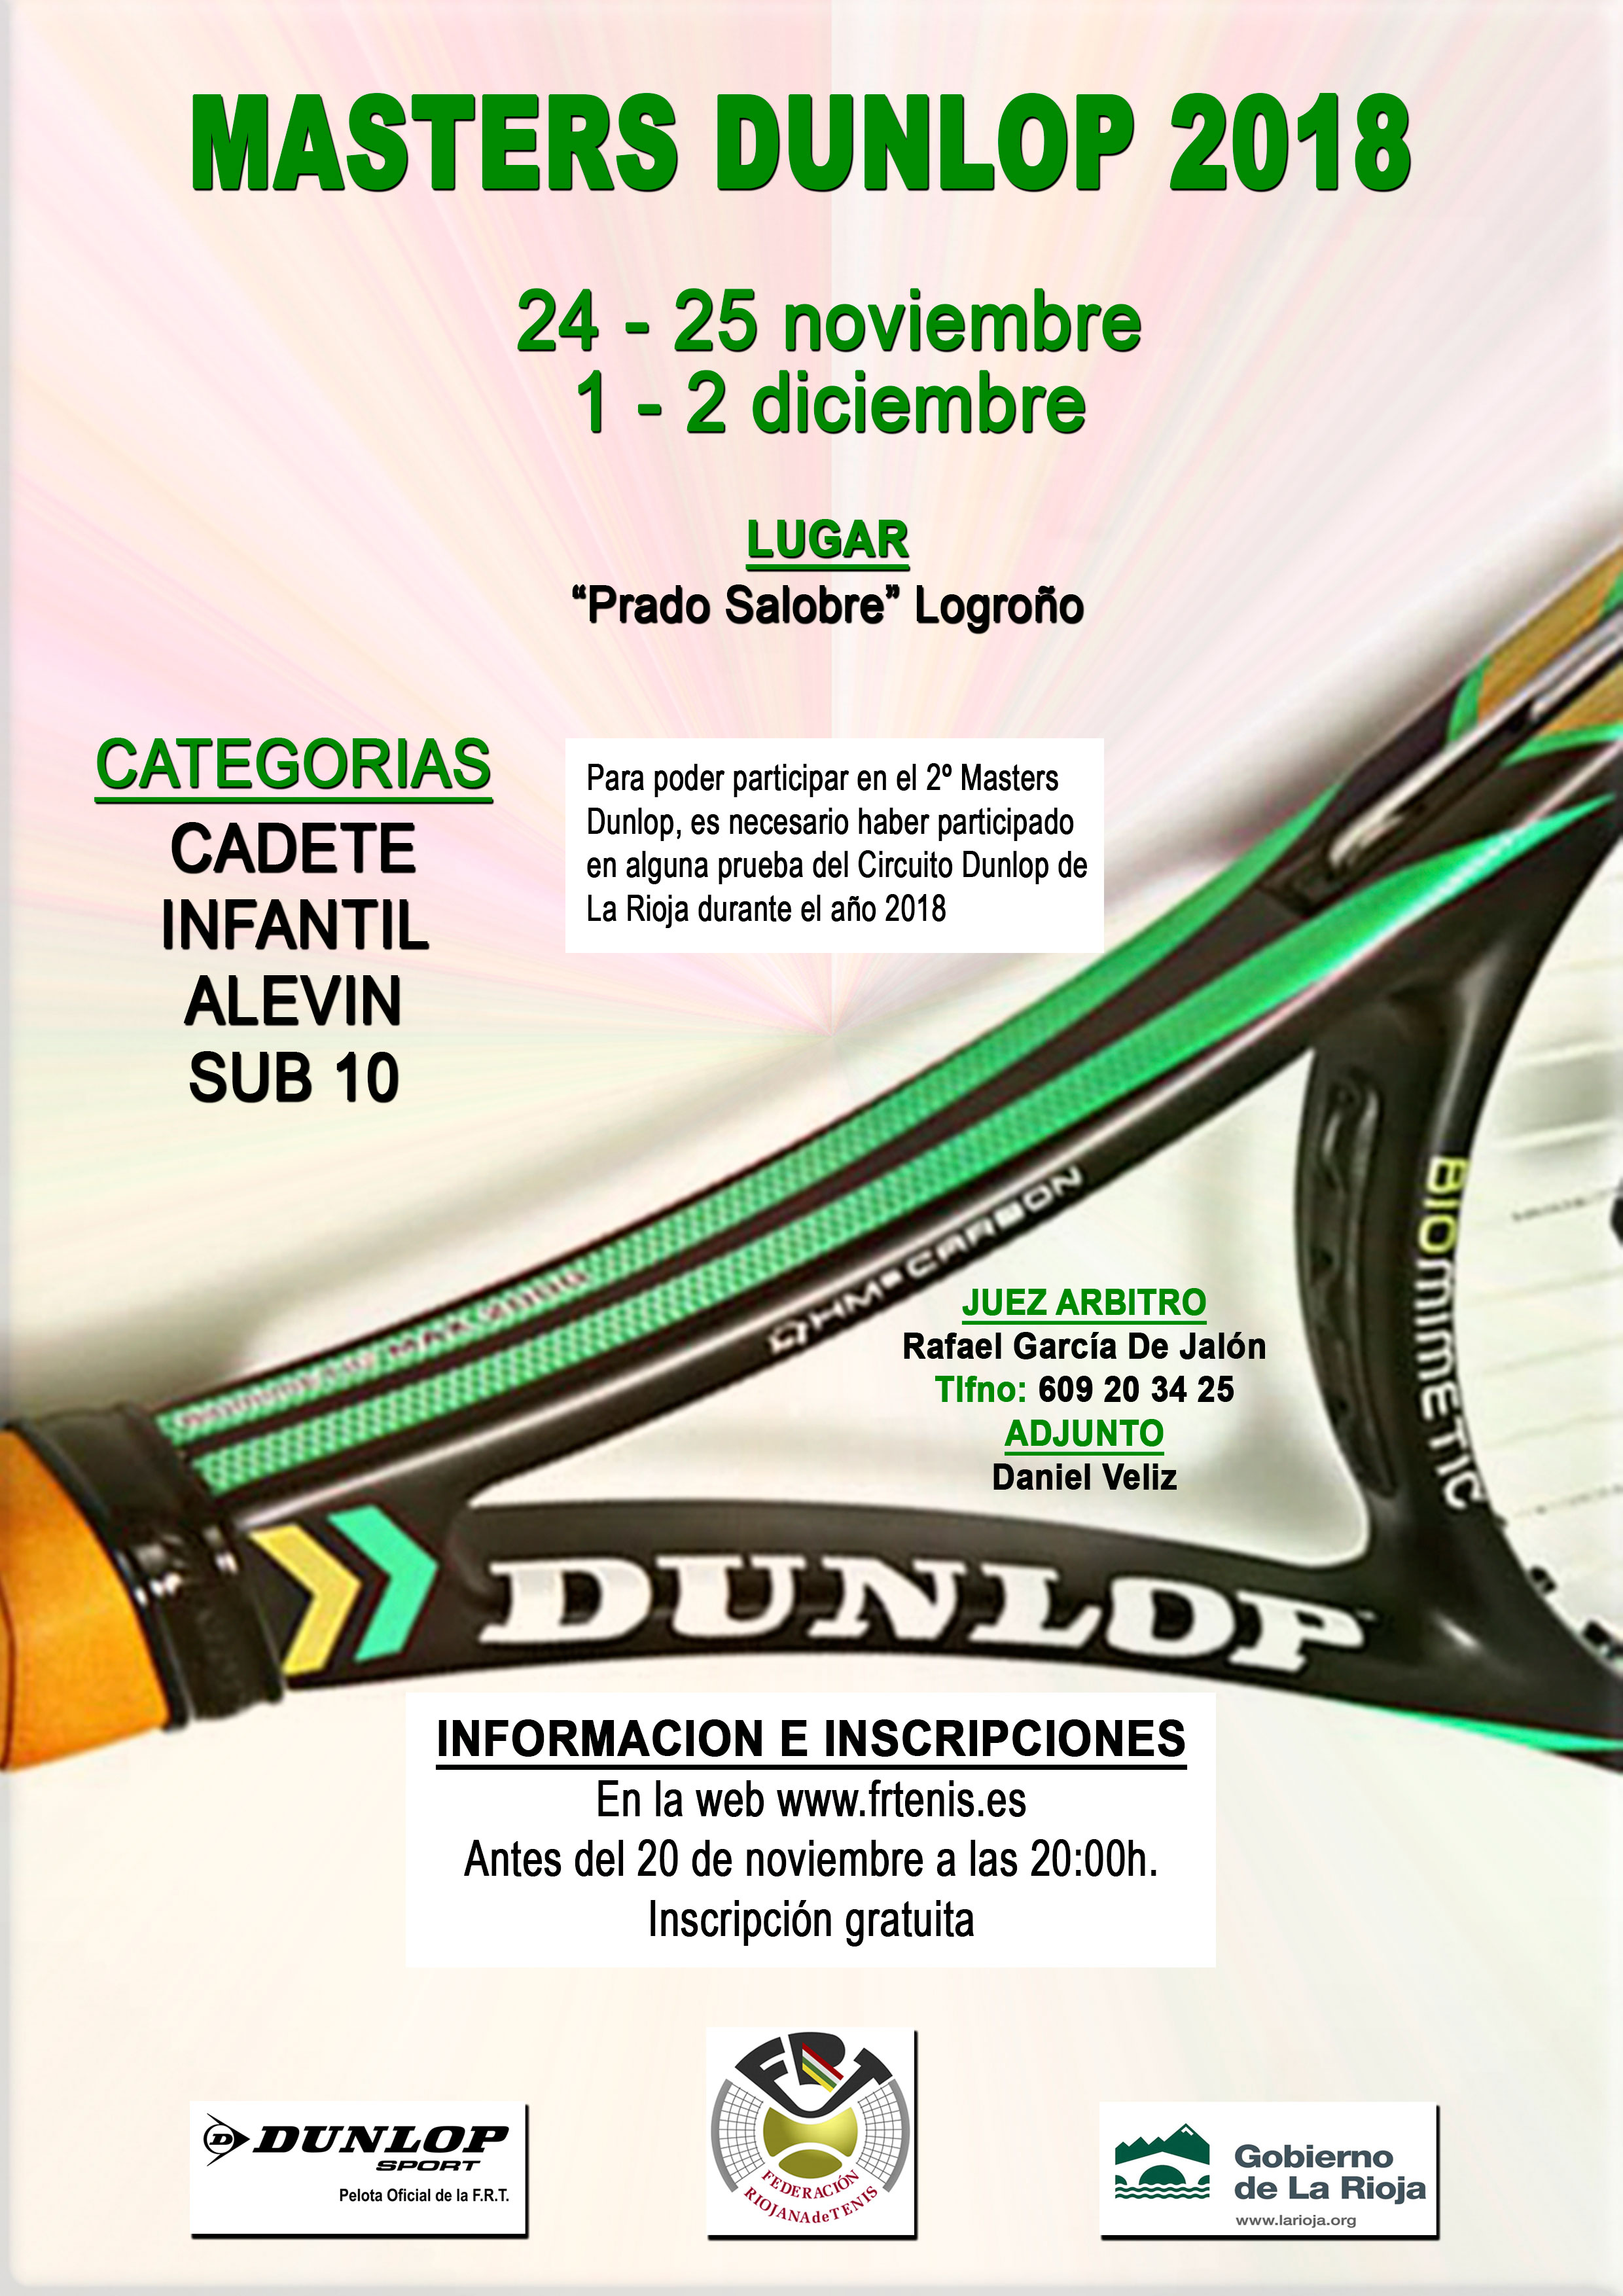 Masters Dunlop 2018